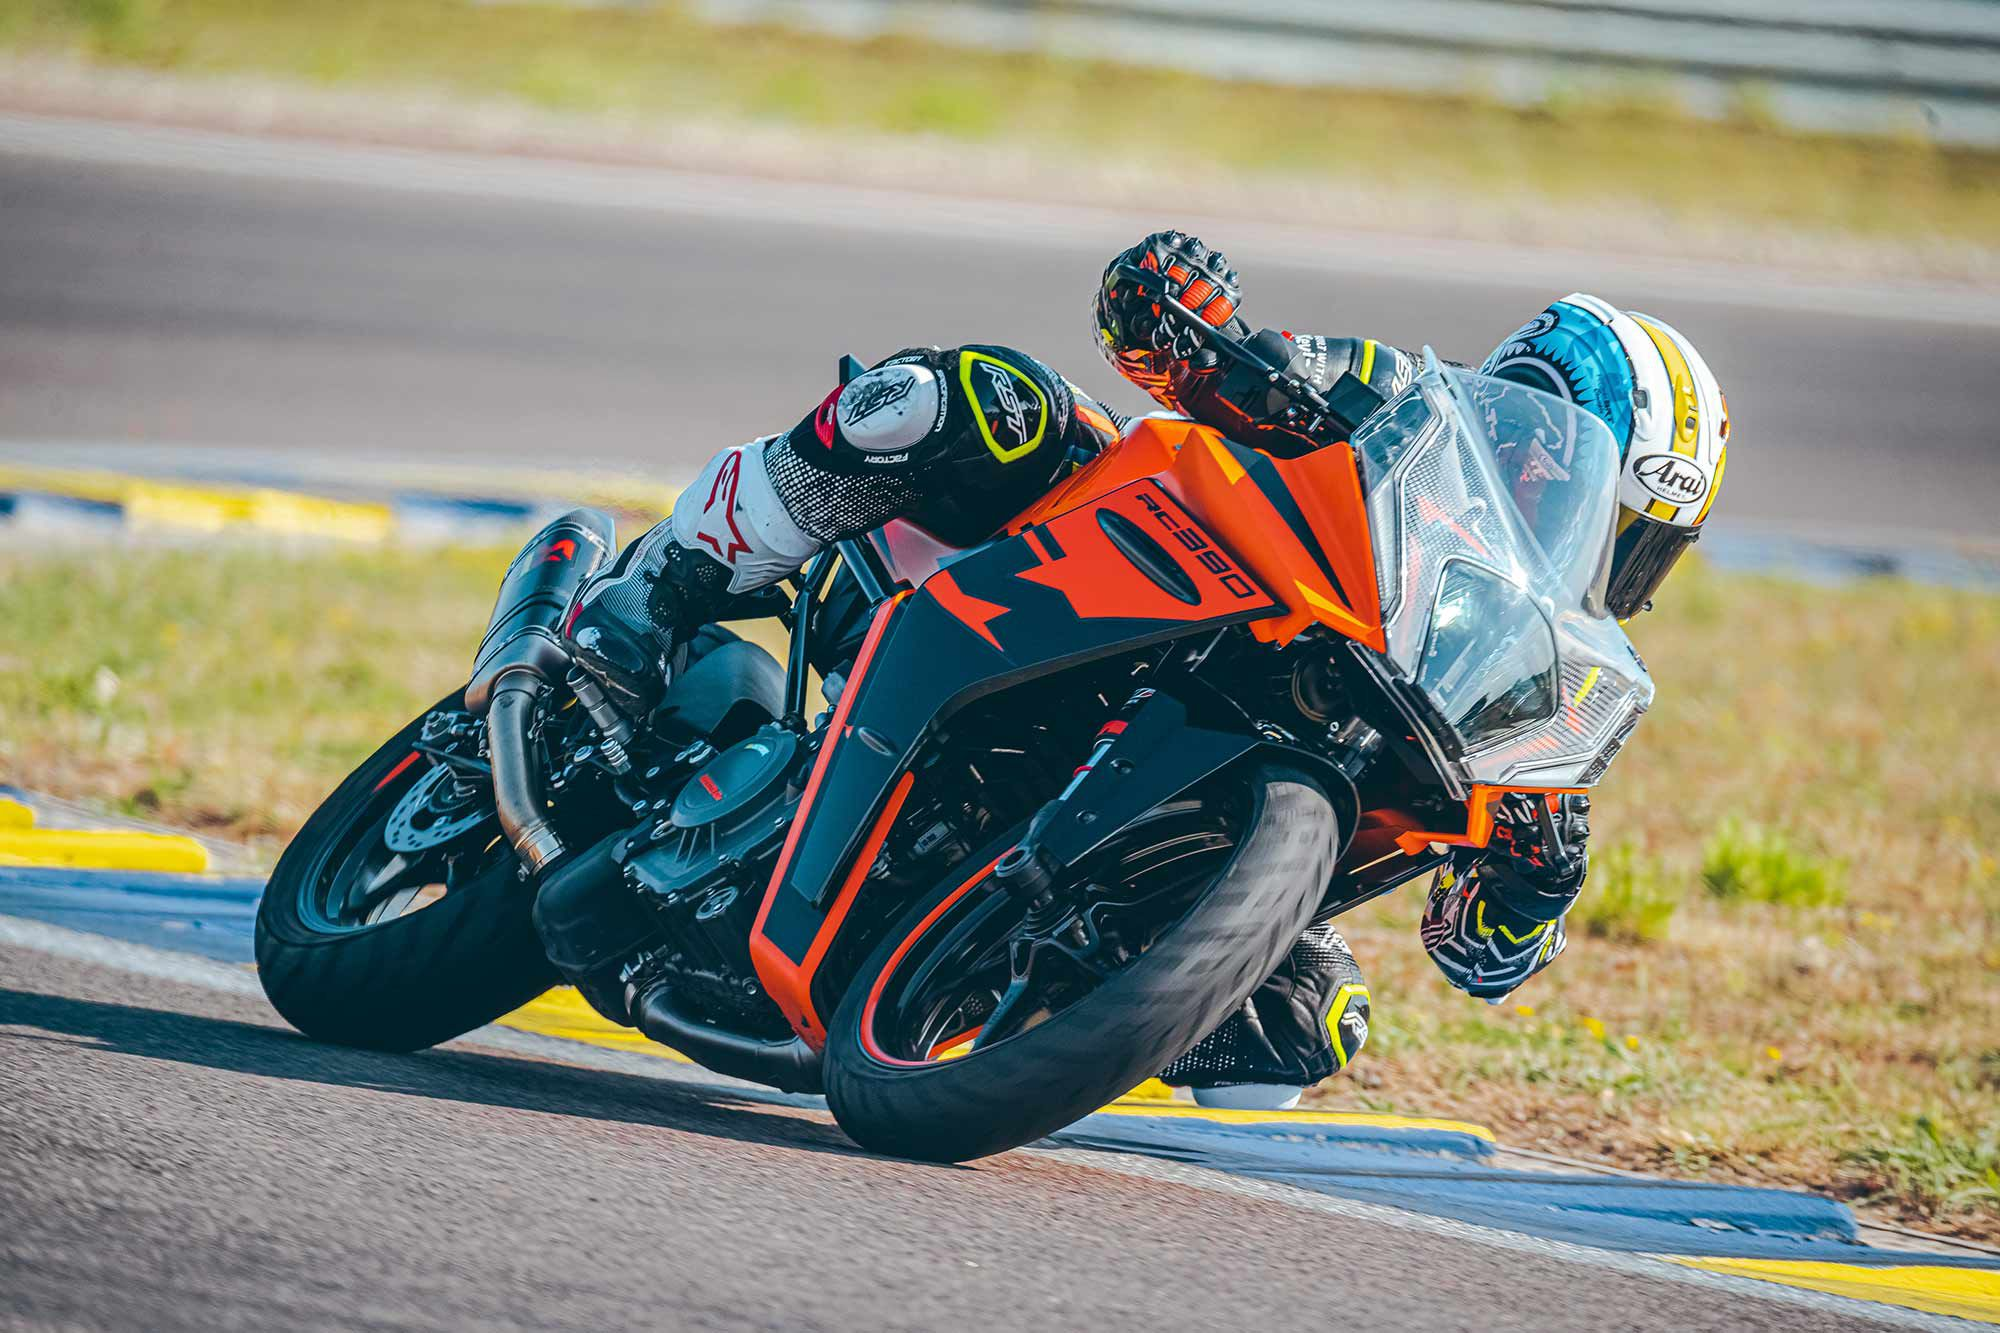 On the track part of this test, KTM fitted the optional Akrapovič muffler, which added a little more pep, but in Euro 5 road trim it's a little deflating.